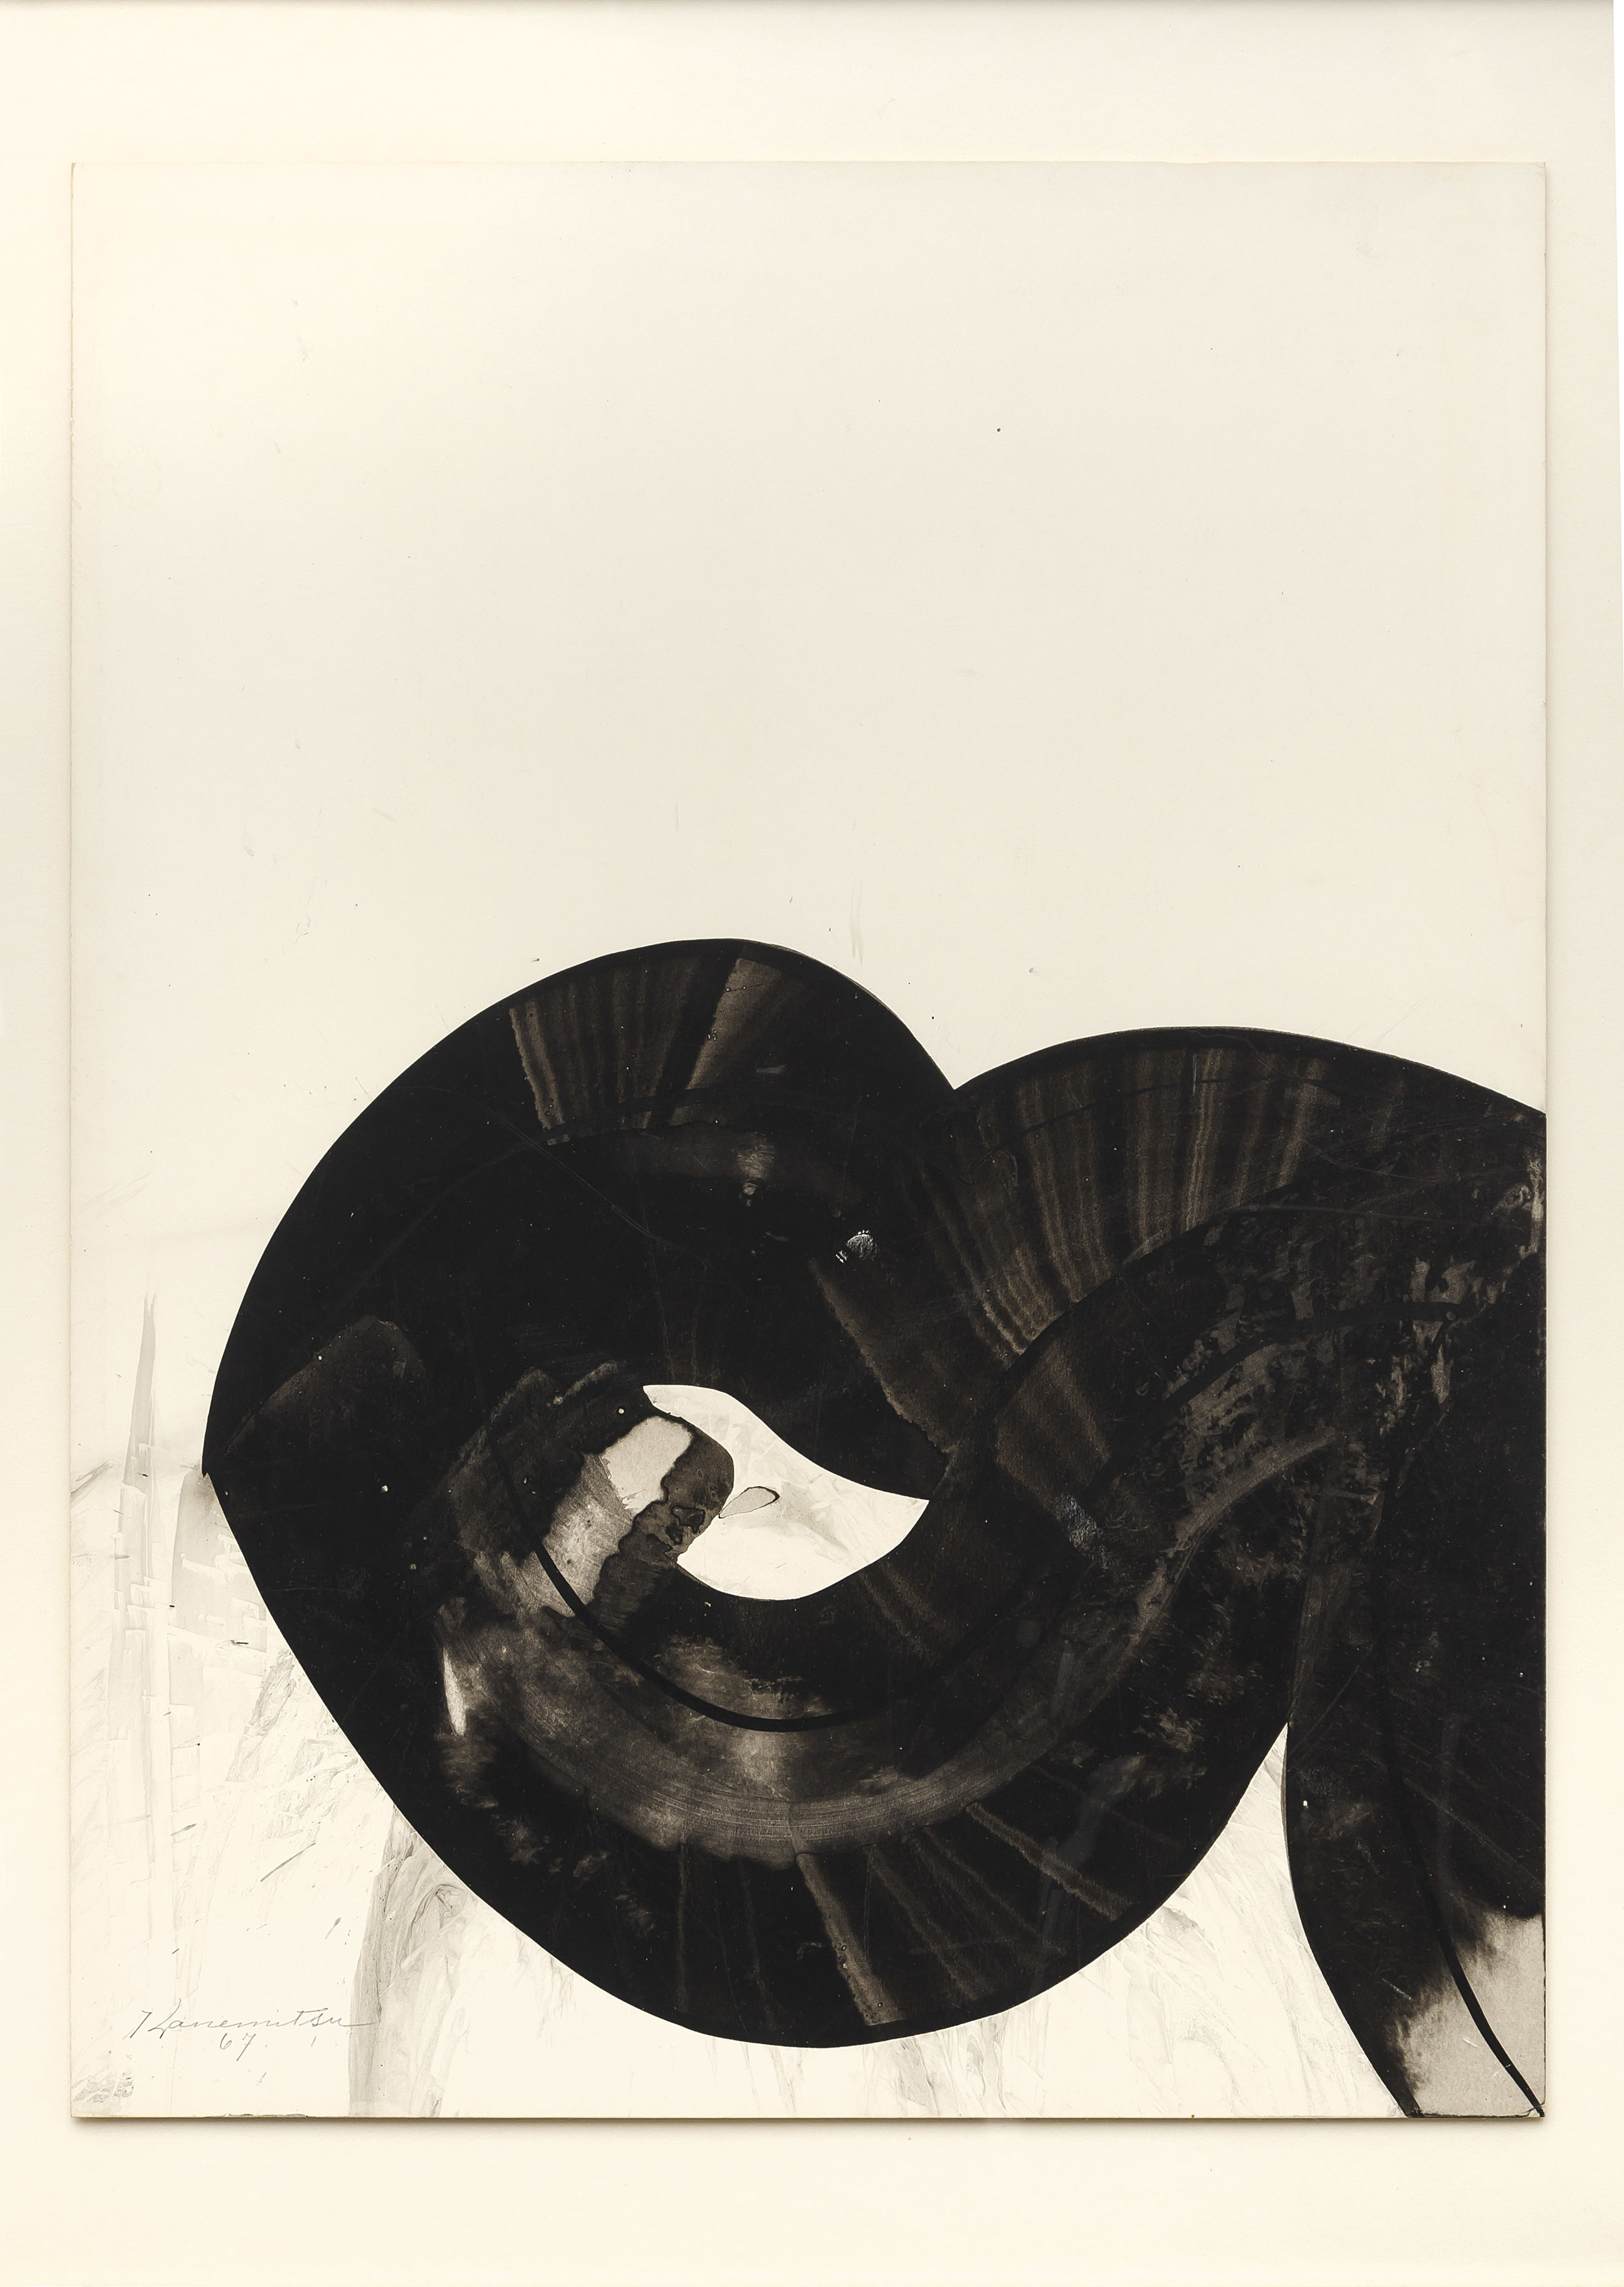 18-19 , 1967 sumi ink on paper 20 x 15 inches; 50.8 x 38.1 centimeters